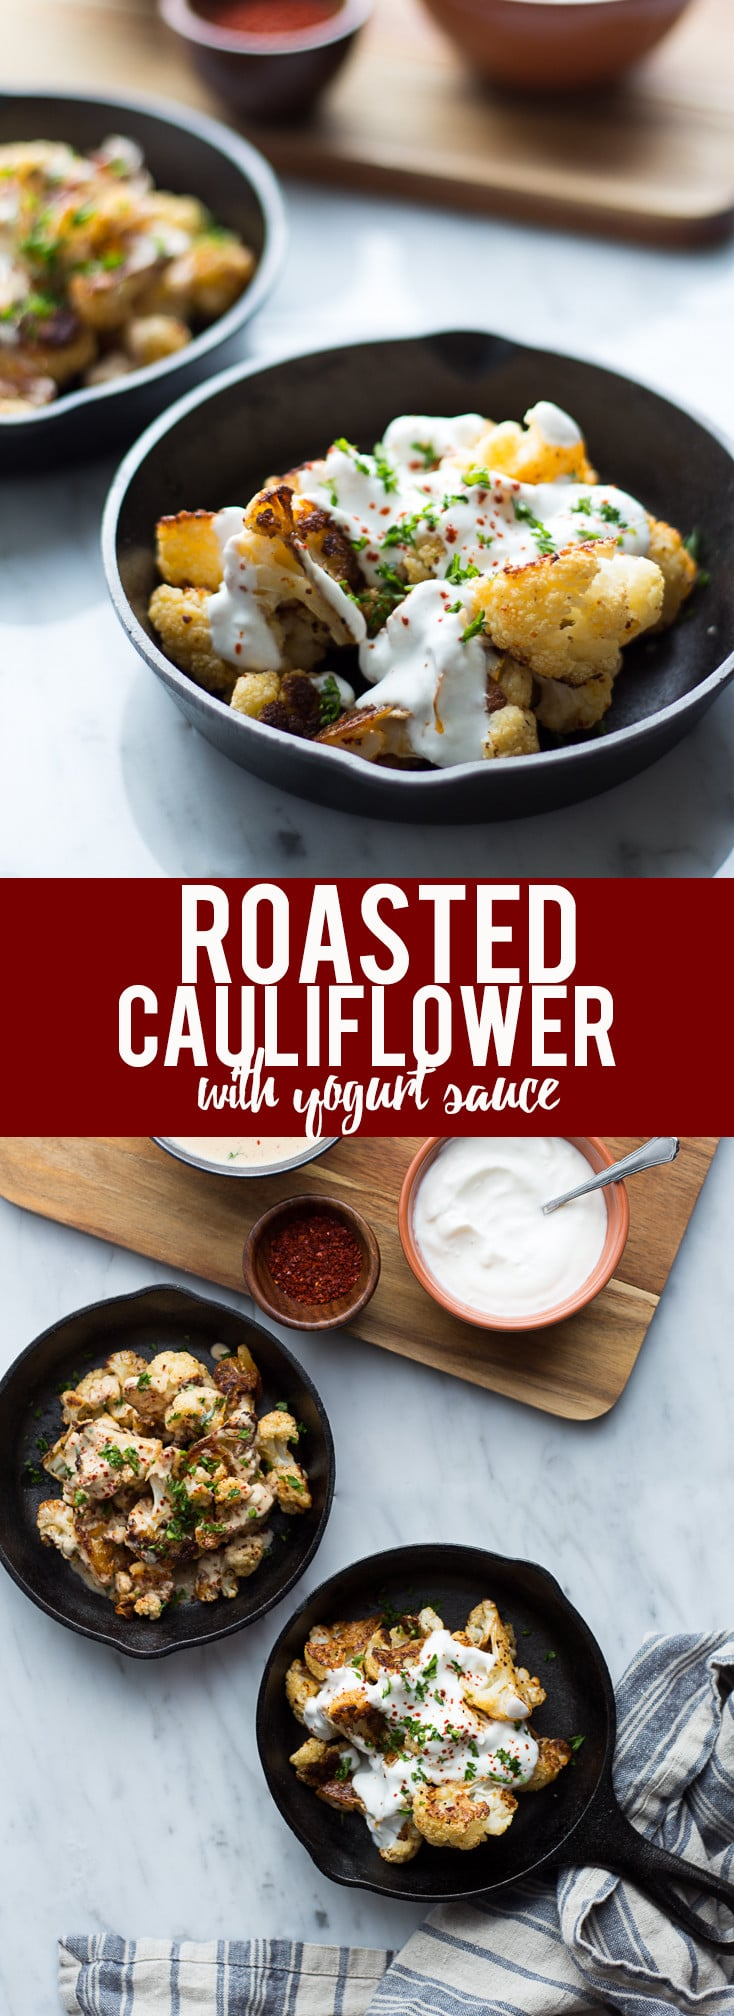 Roasted Cauliflower With Yogurt Sauce AND a dairy free tahini sauce! You won't beleive how addictive this dish is with caramelized cauliflower, a zingy yogurt sauce and a tasty tahini sauce for peope who prefer not to eat dairy.